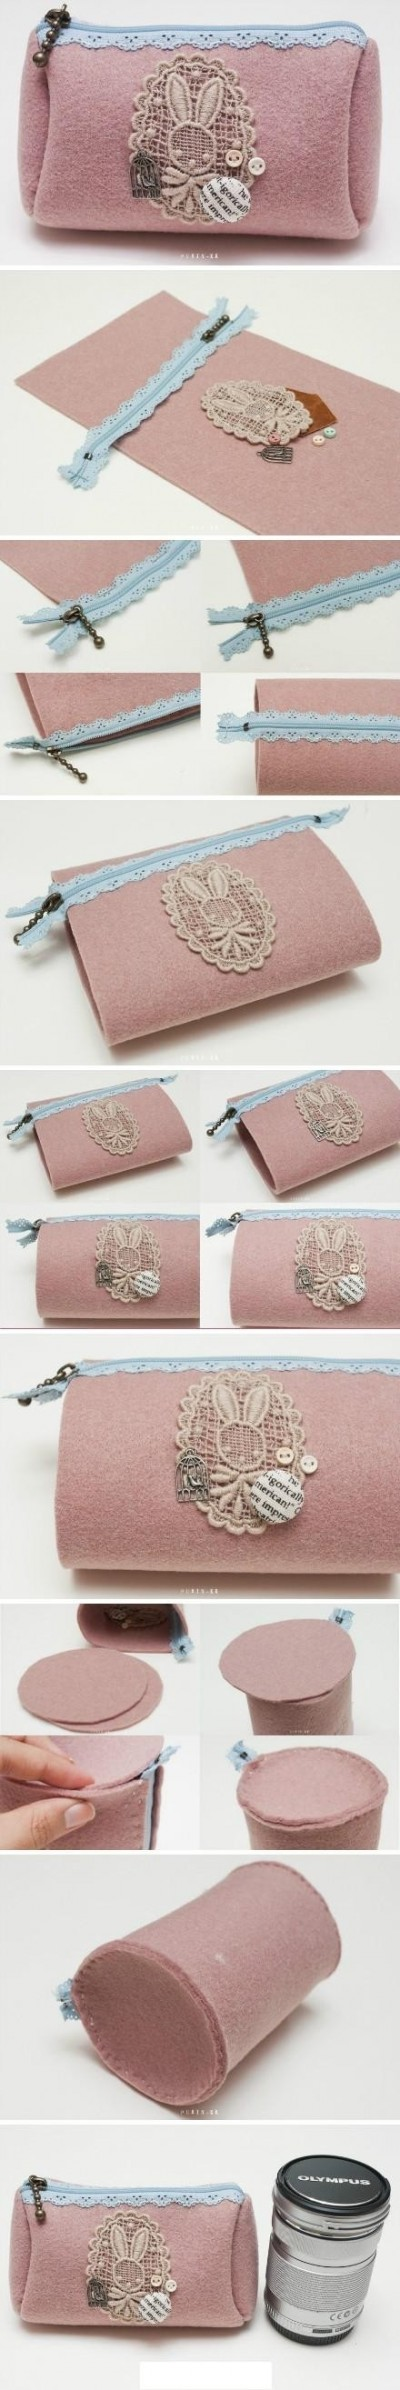 How to make cute bunny hand bag step by step DIY tutorial picture instructions